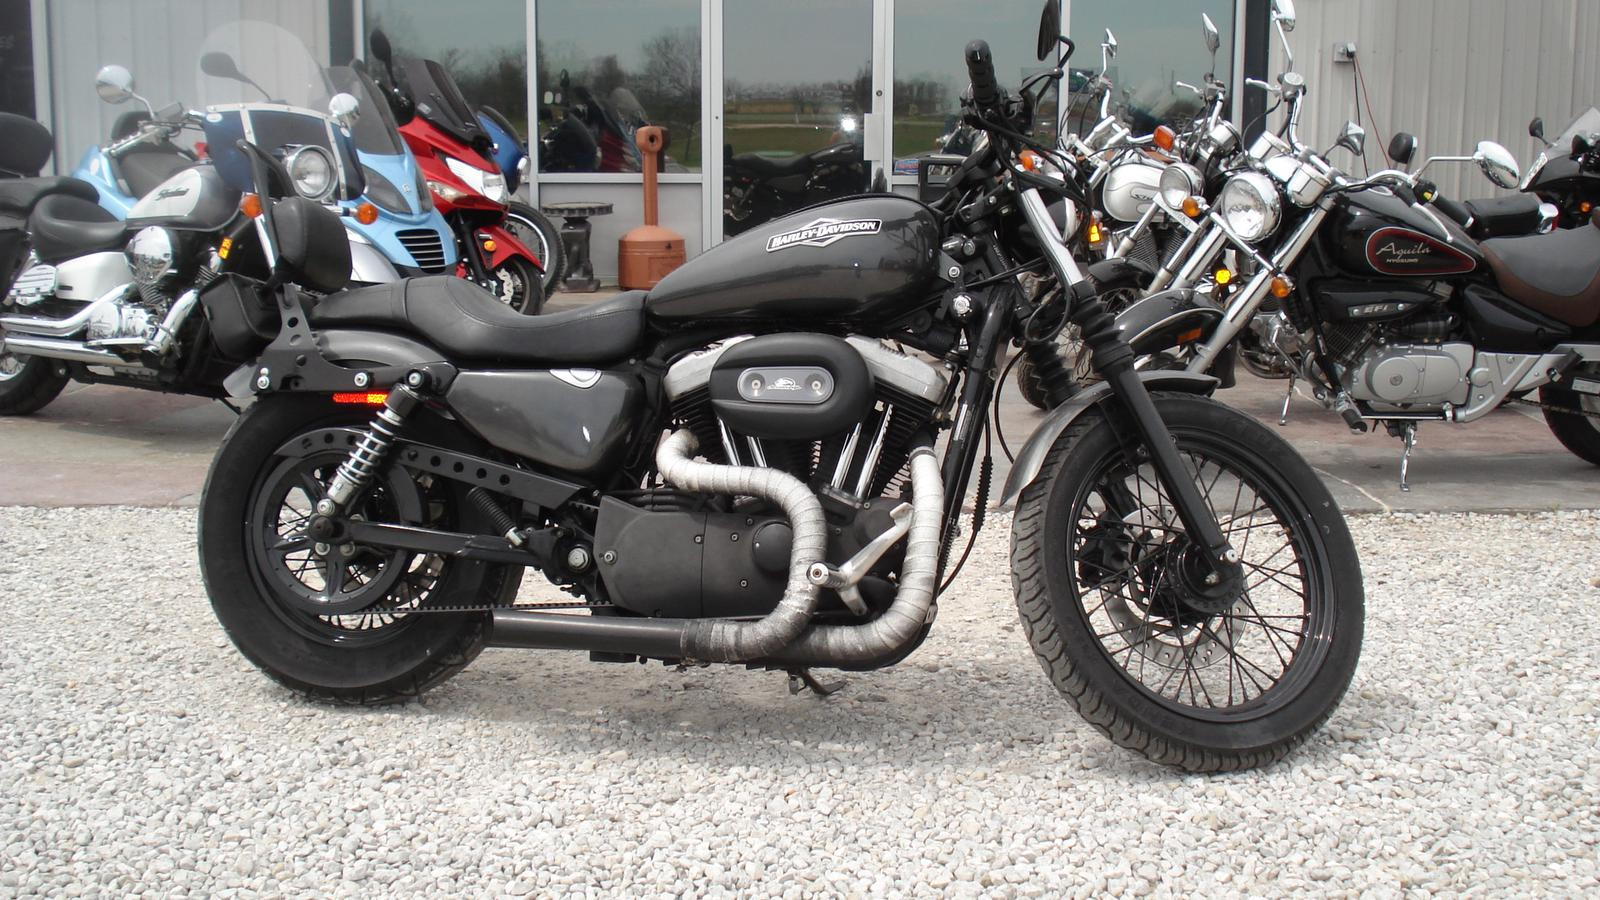 2007 Harley Davidson Xl1200 For Sale In Neosho Mo West 60 Cycle